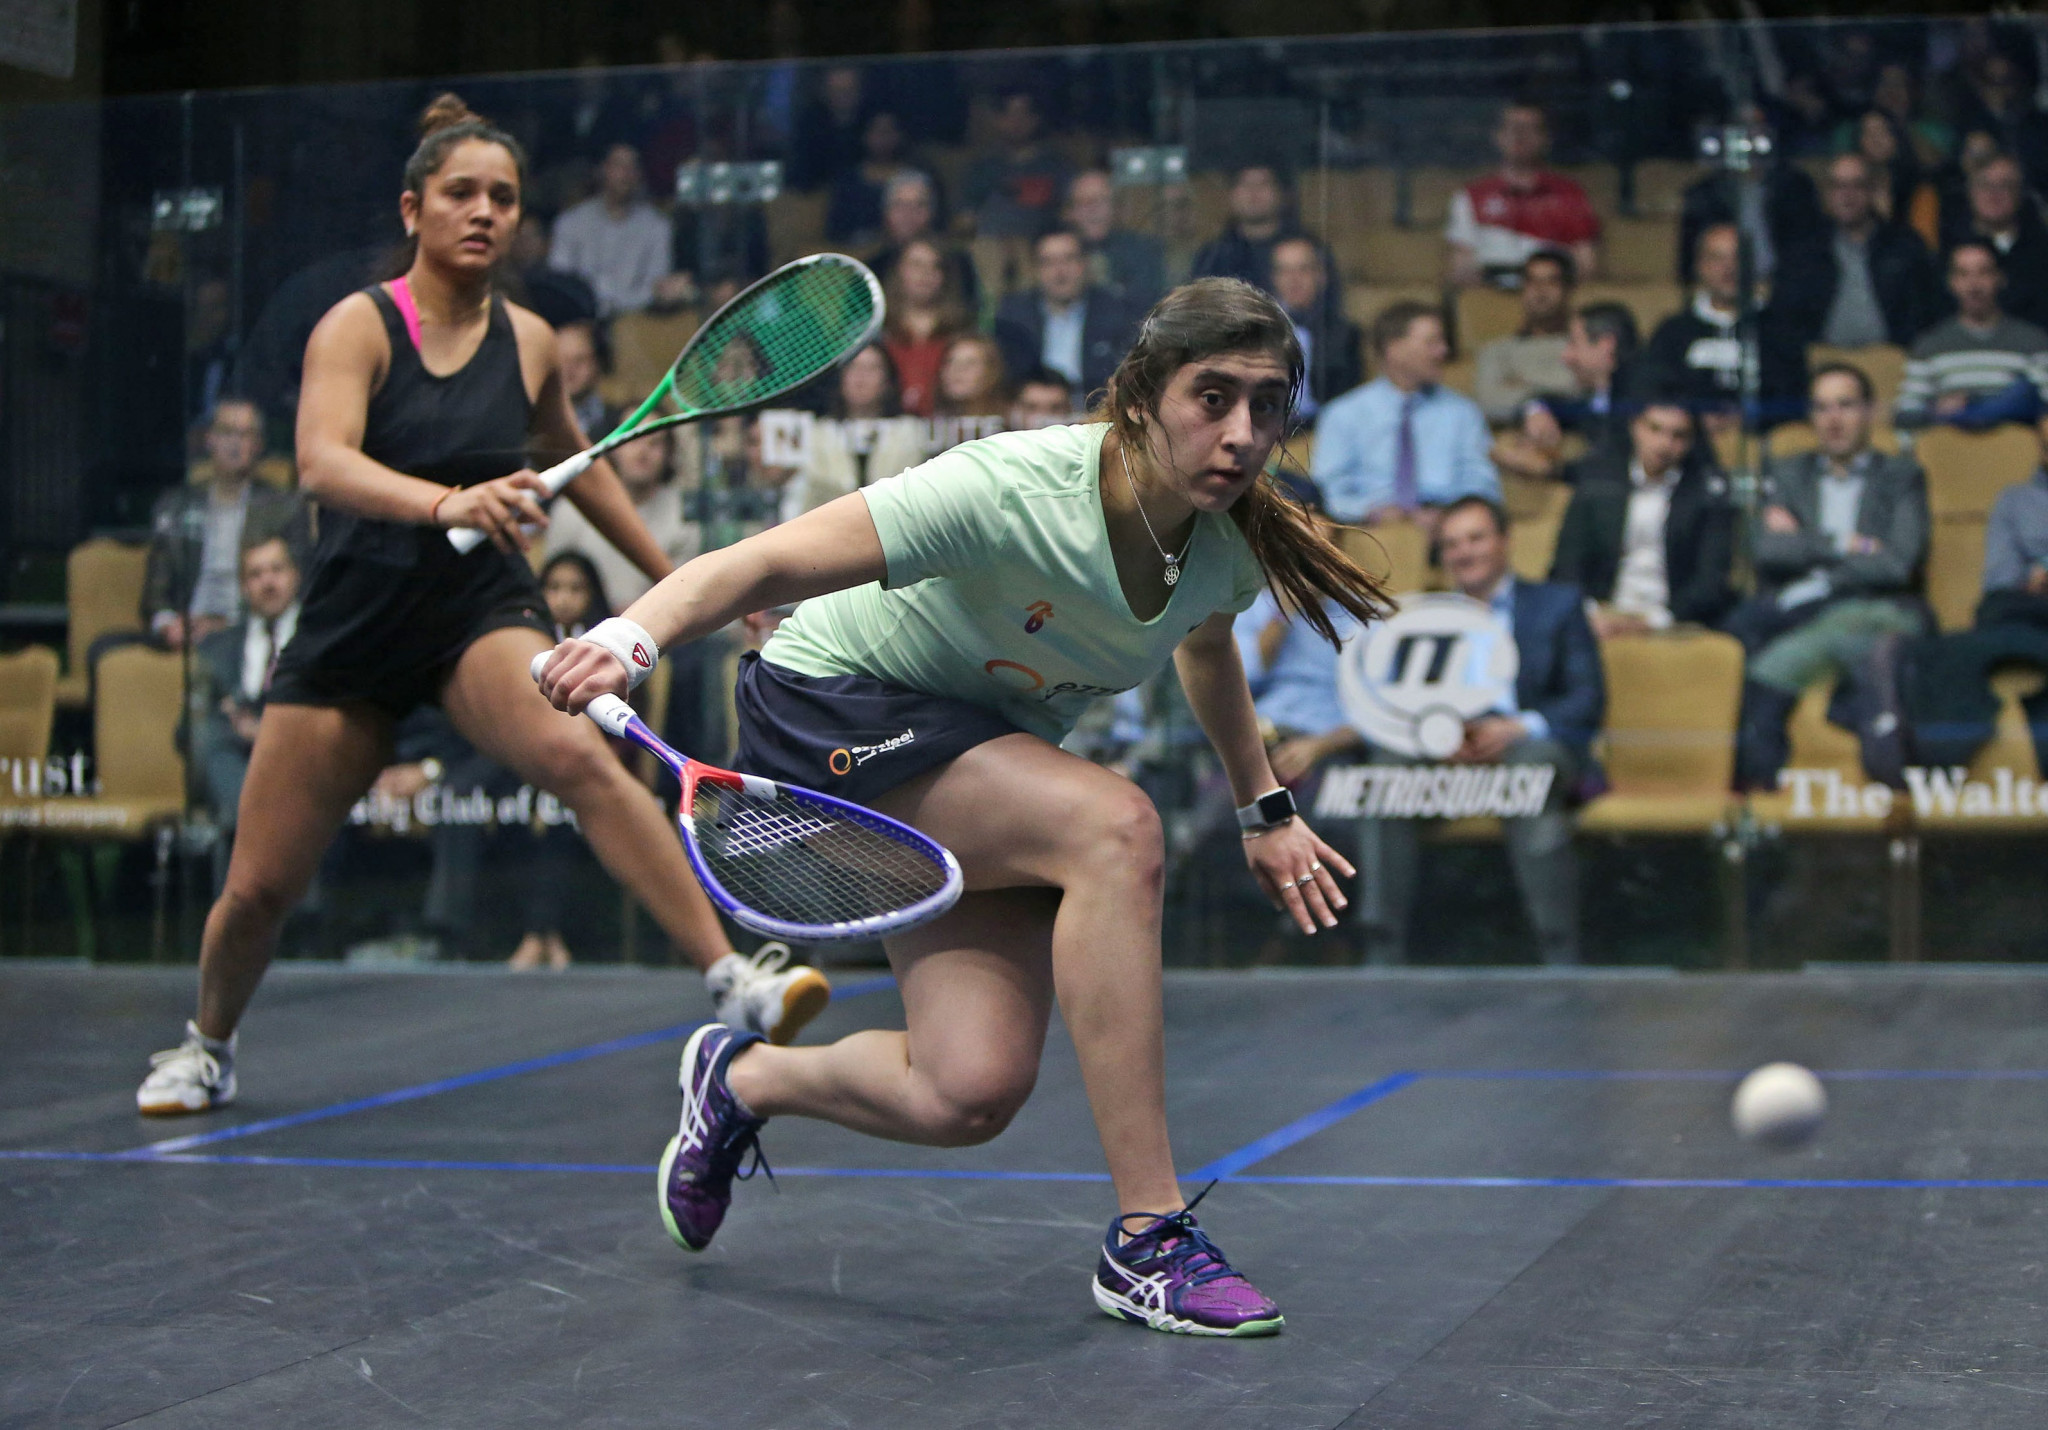 High seeds untroubled on opening day of PSA Windy City Open